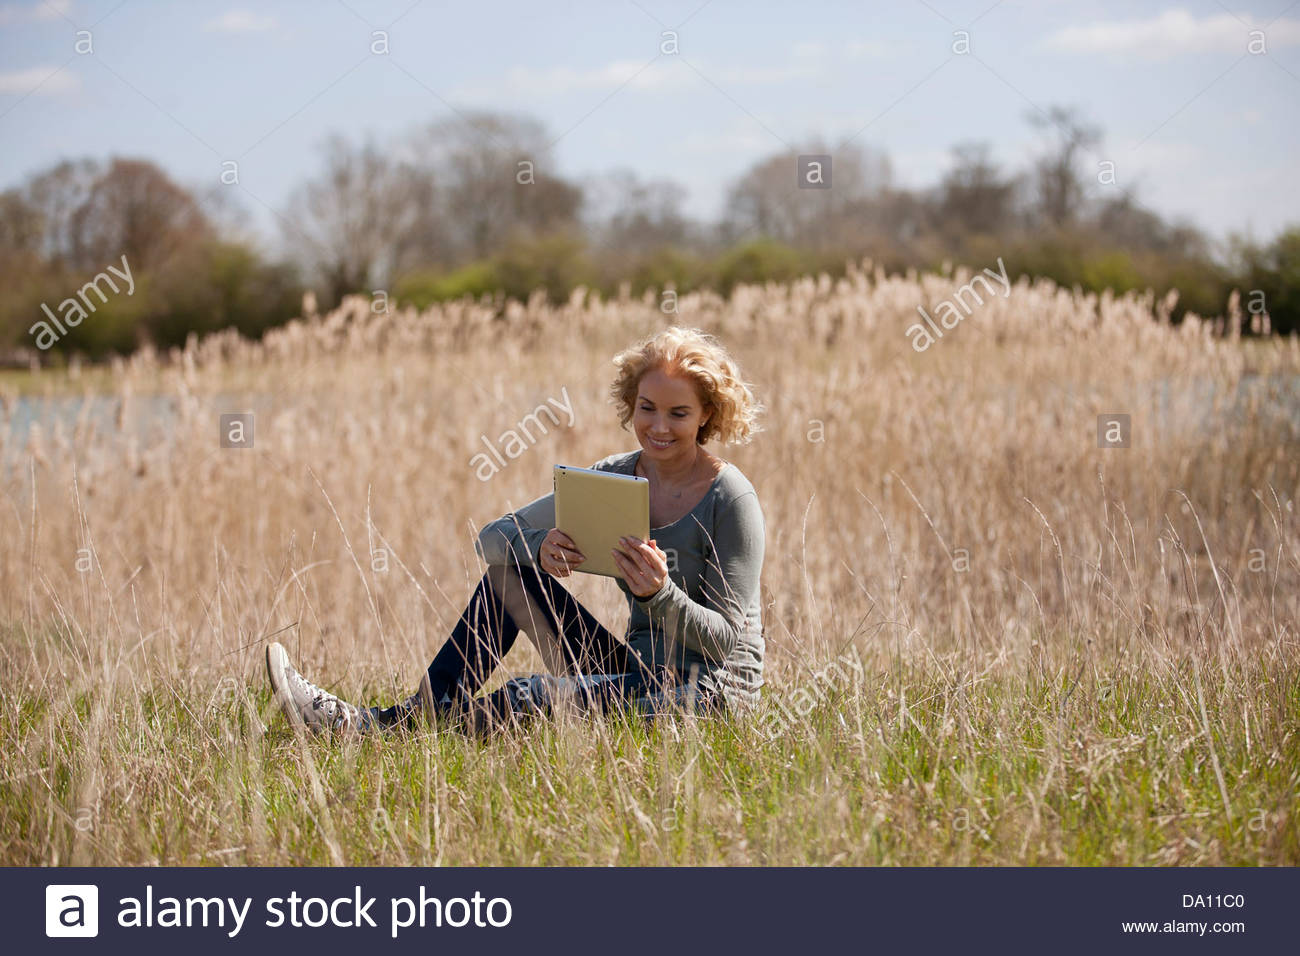 A mature woman sitting in long grass, looking at a digital tablet - Stock Image